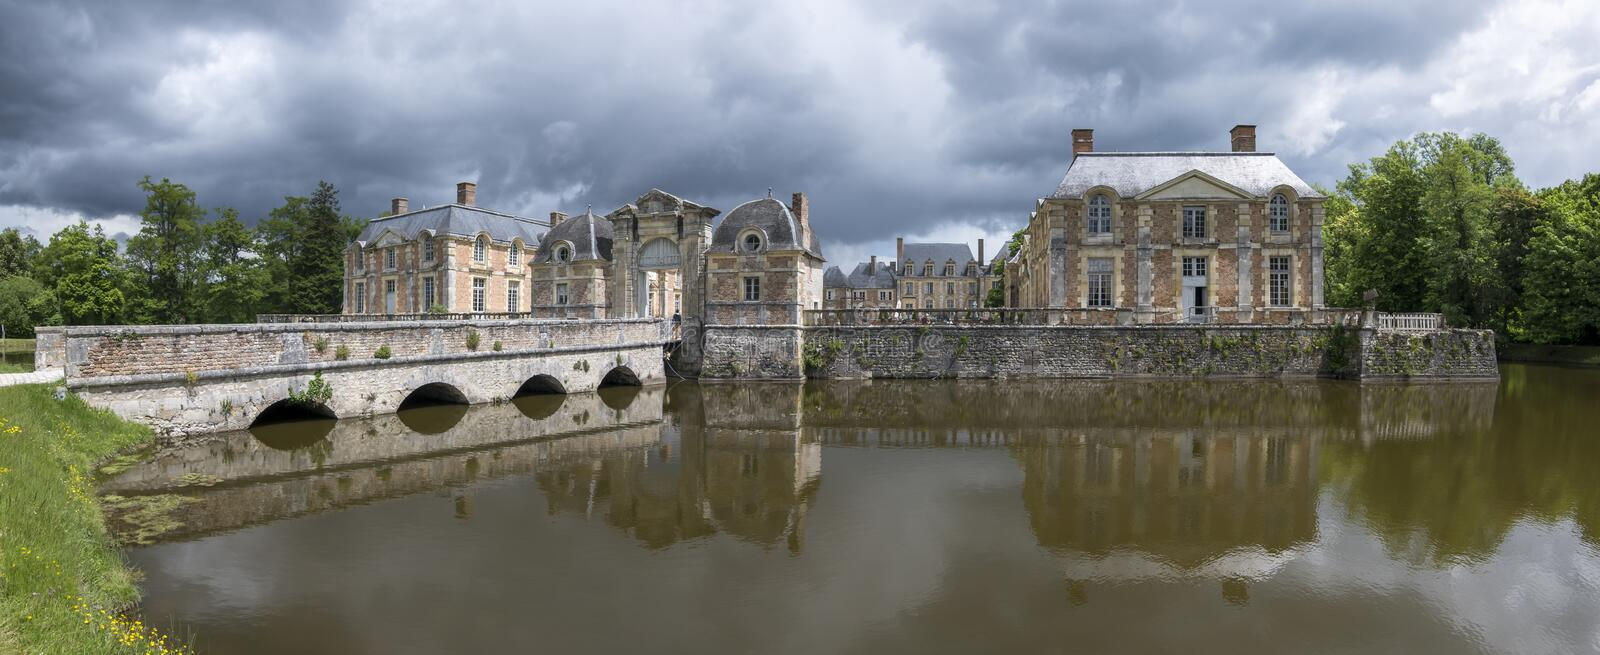 Castle of of de la Ferte Saint-Aubin royalty free stock photography